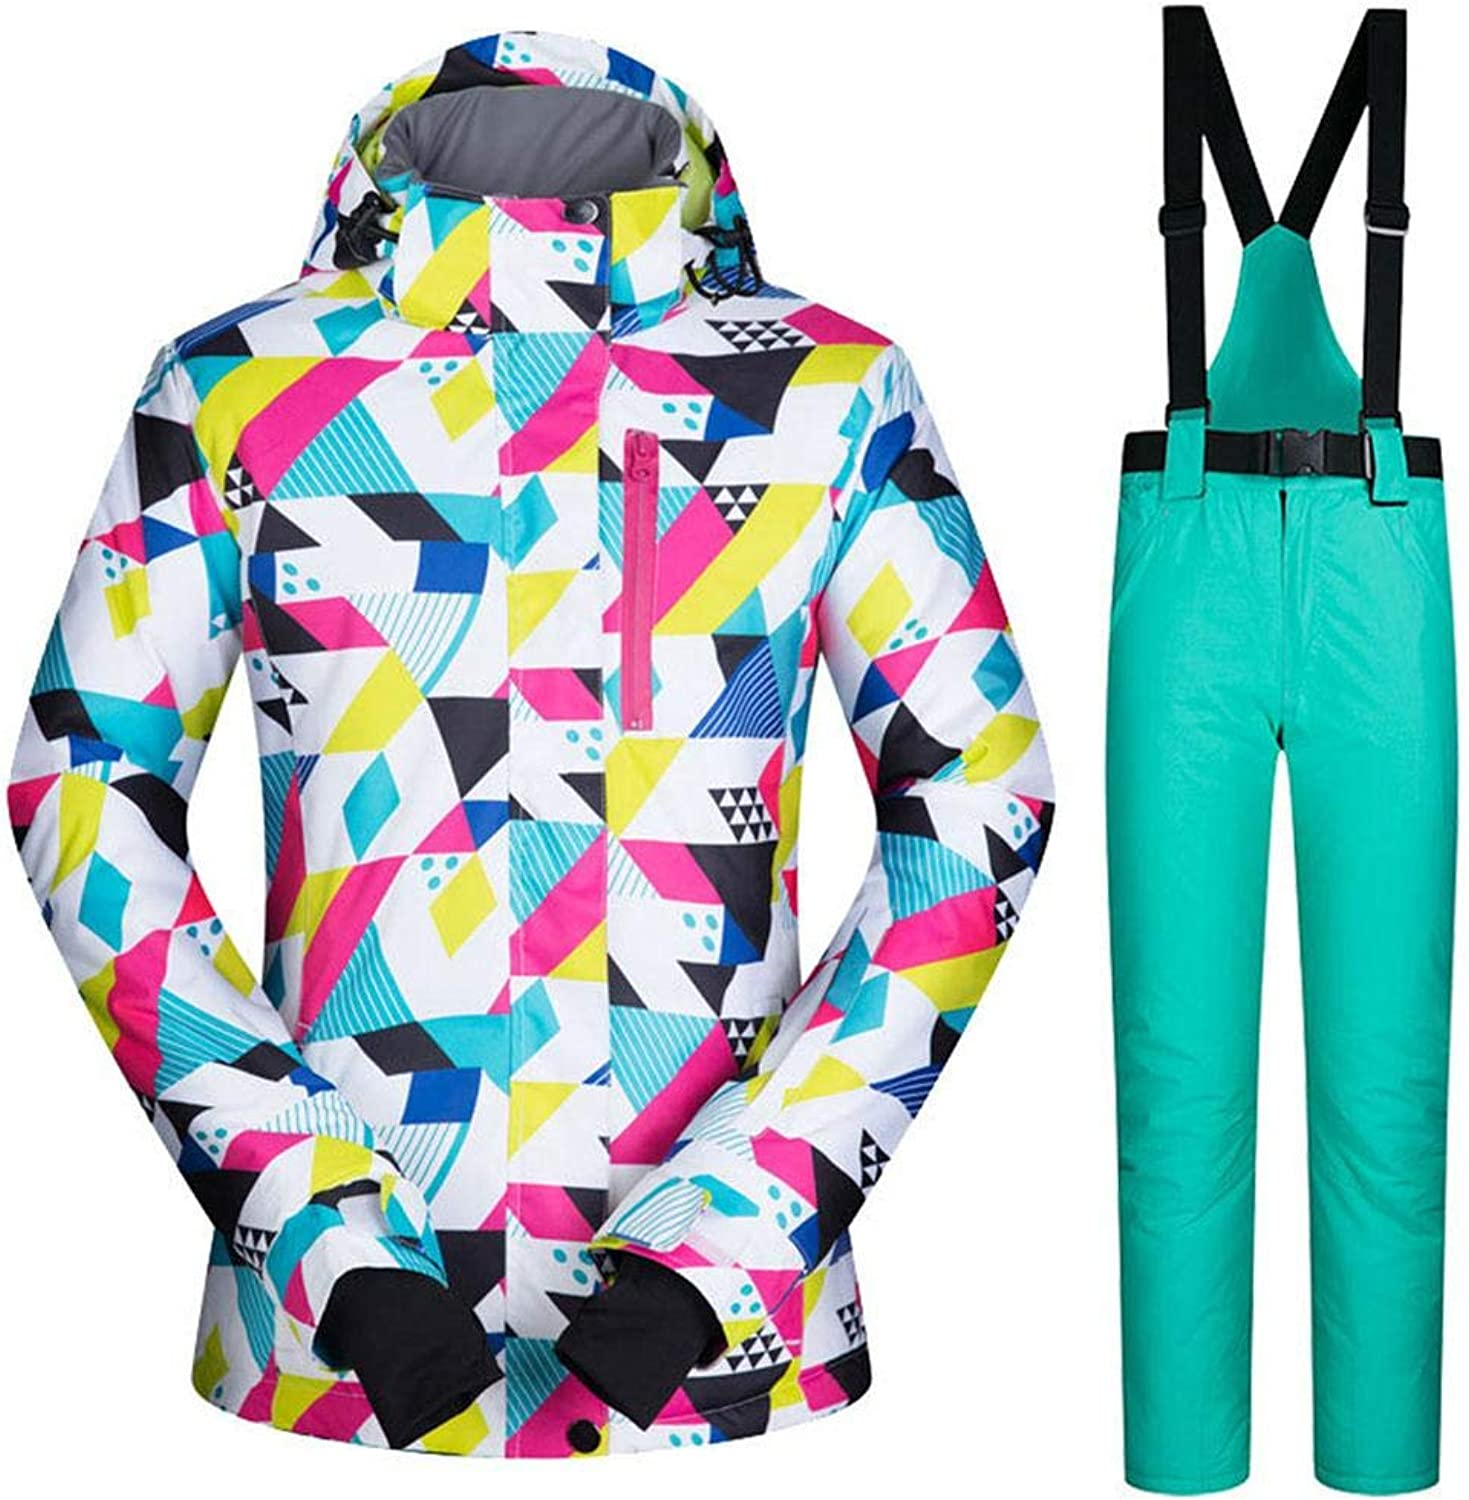 Outdoor Sports Ski Suit Jacket for Women, Comes with Windproof Neck and Windproof Cuffs, Waterproof Windproof Warm